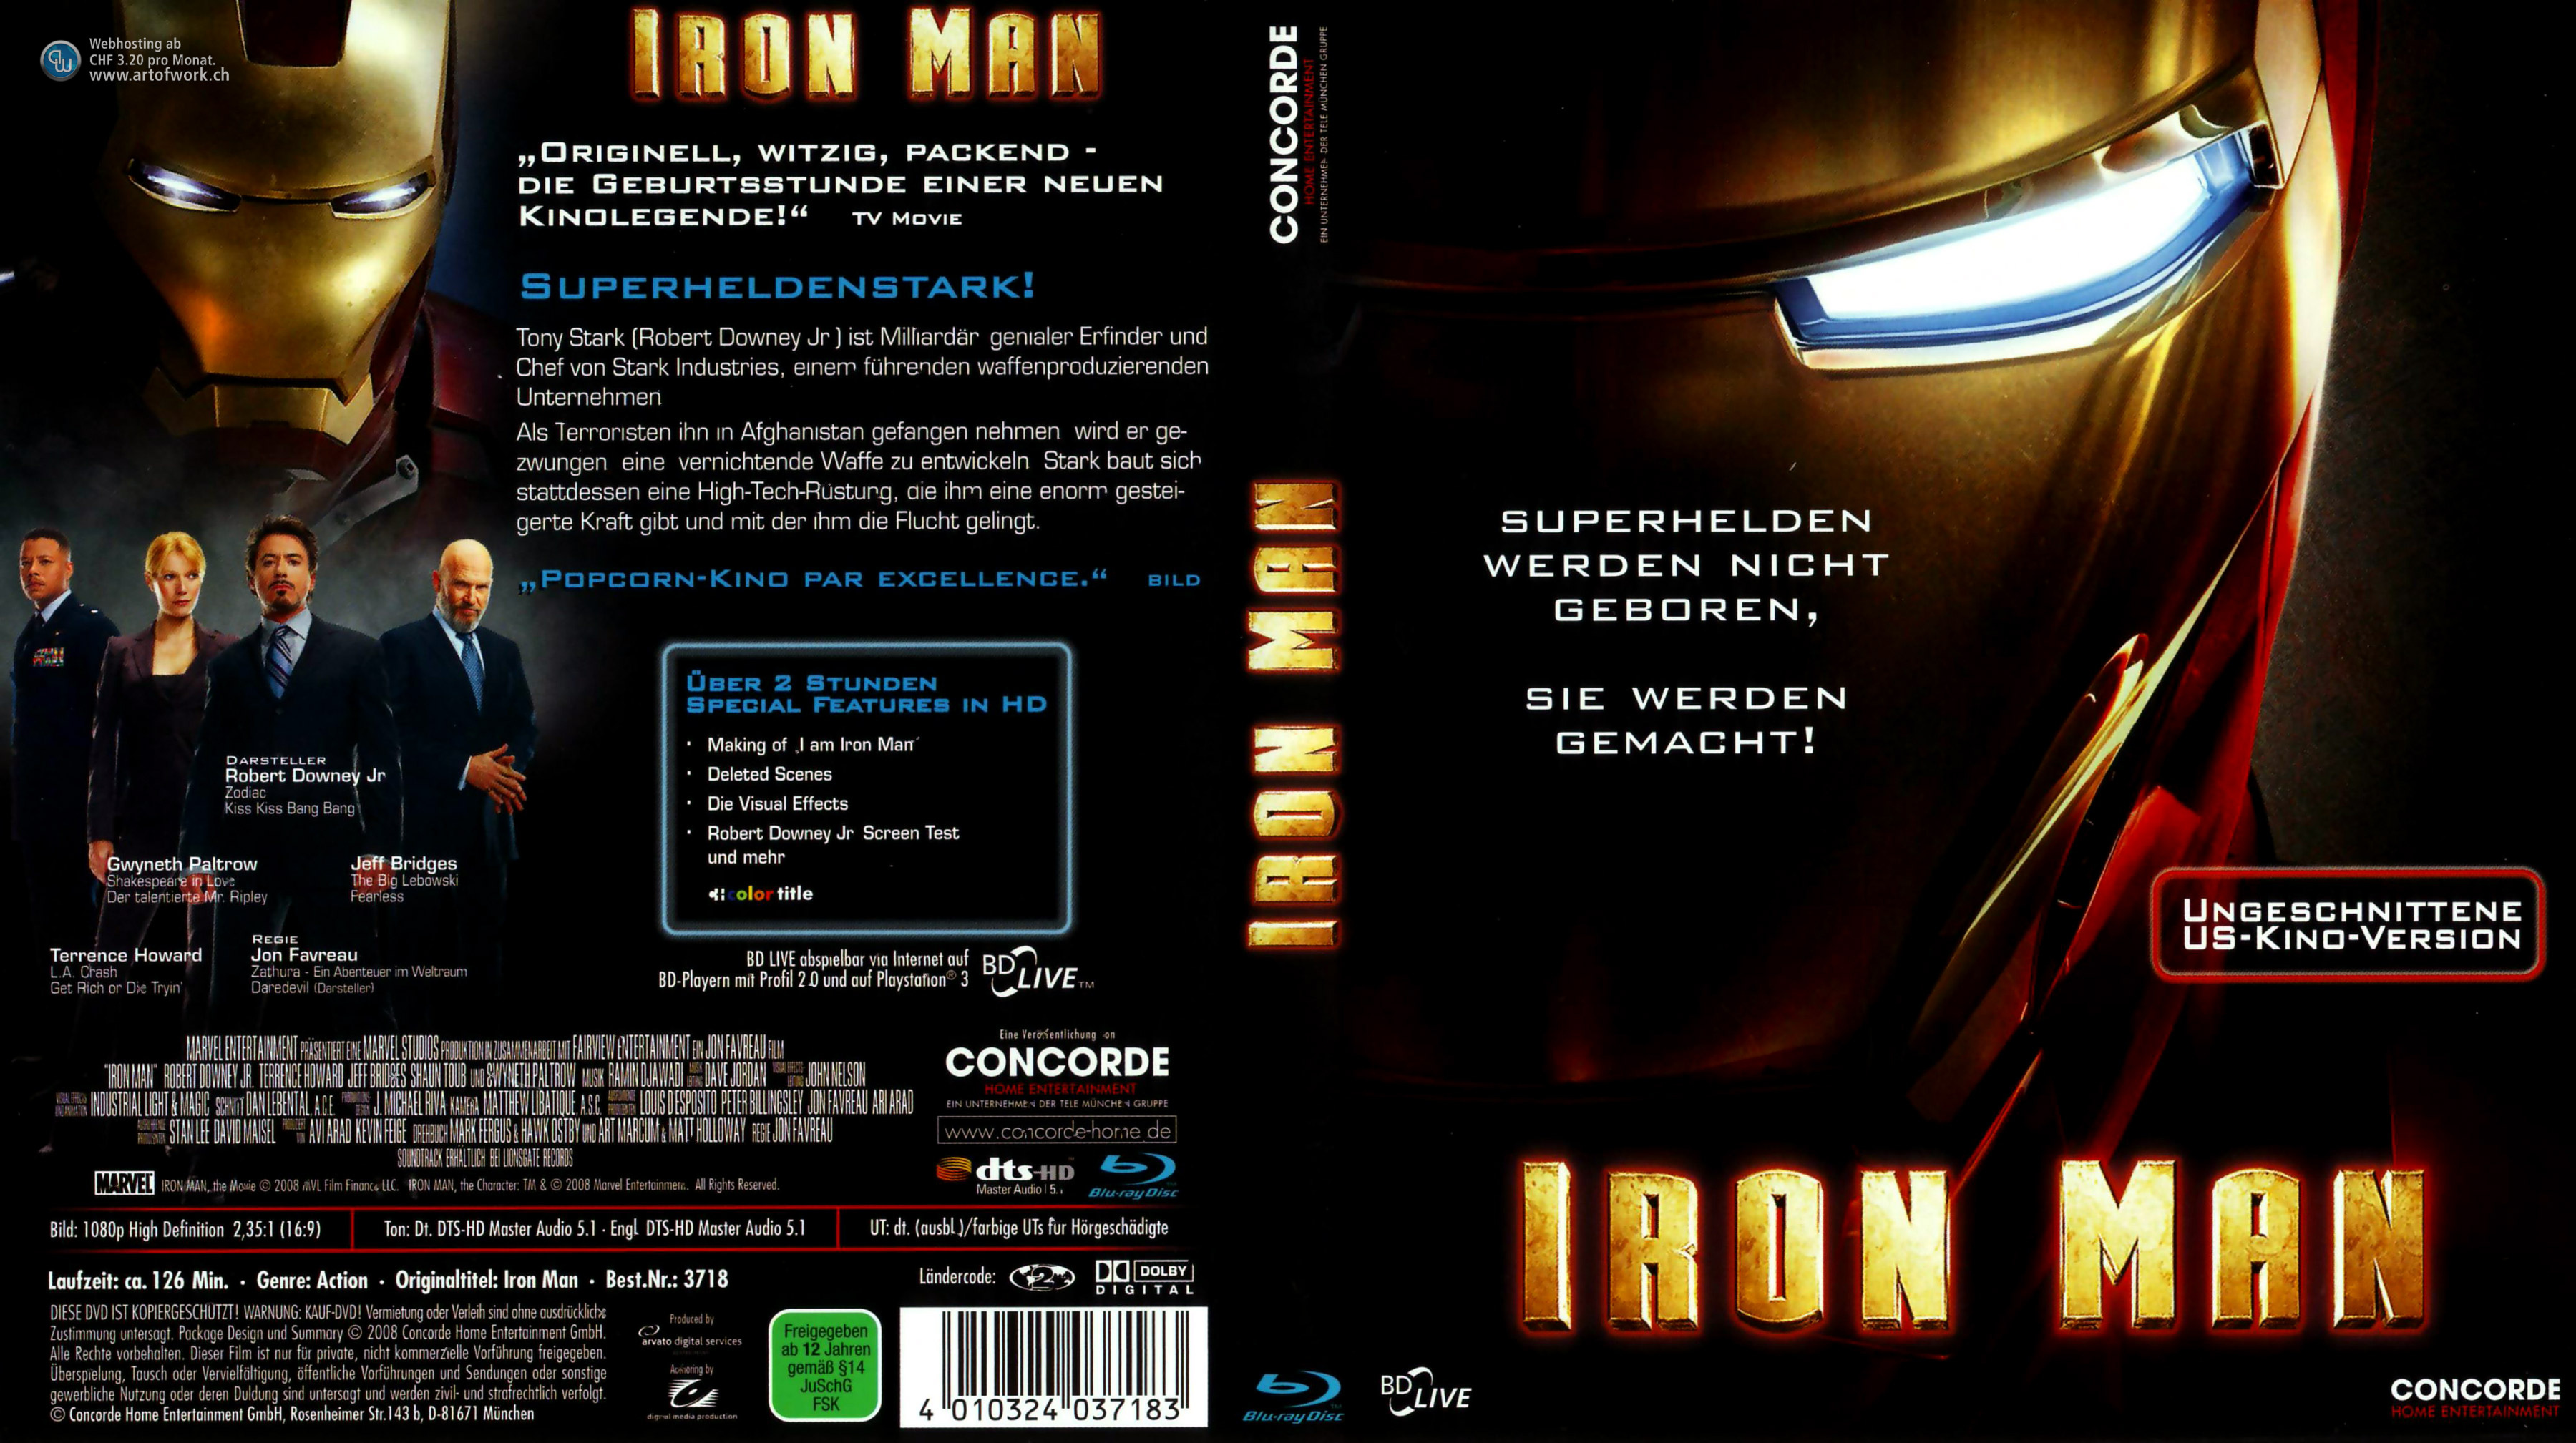 iron man 1 cover images galleries with a bite. Black Bedroom Furniture Sets. Home Design Ideas